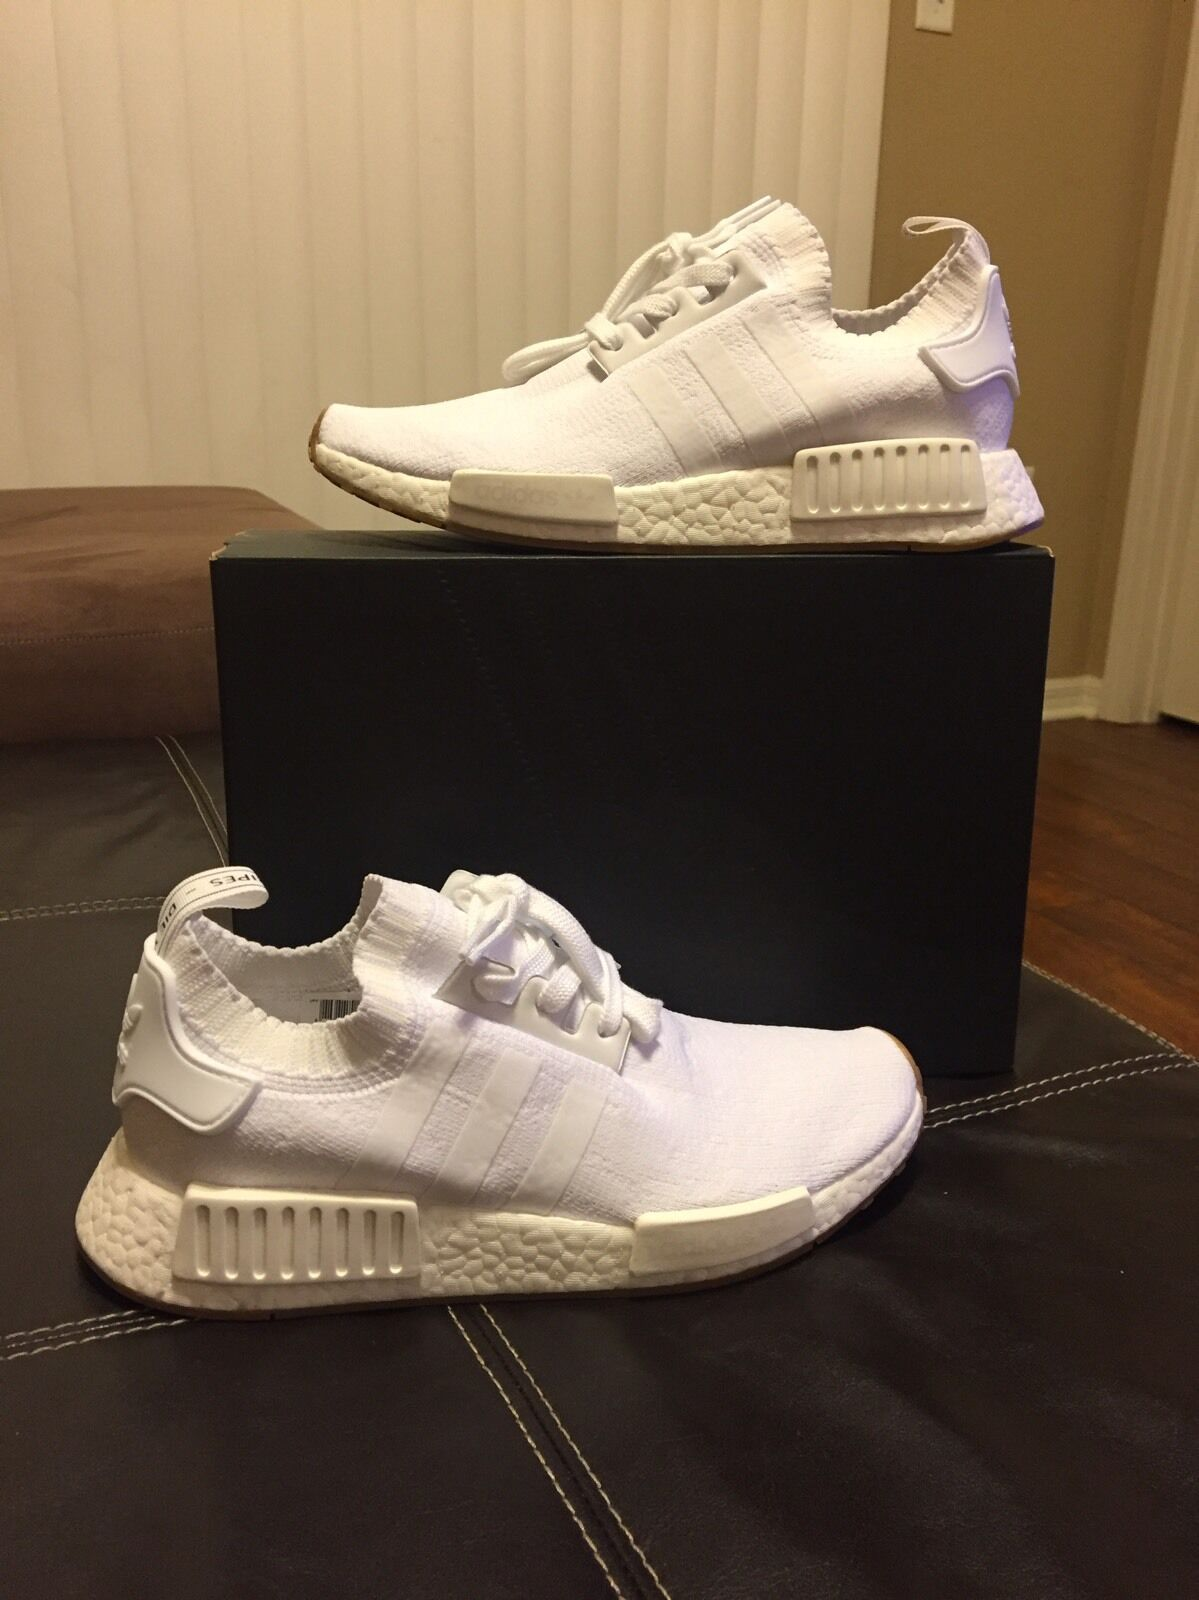 DS Adidas NMD R1 PK Boost